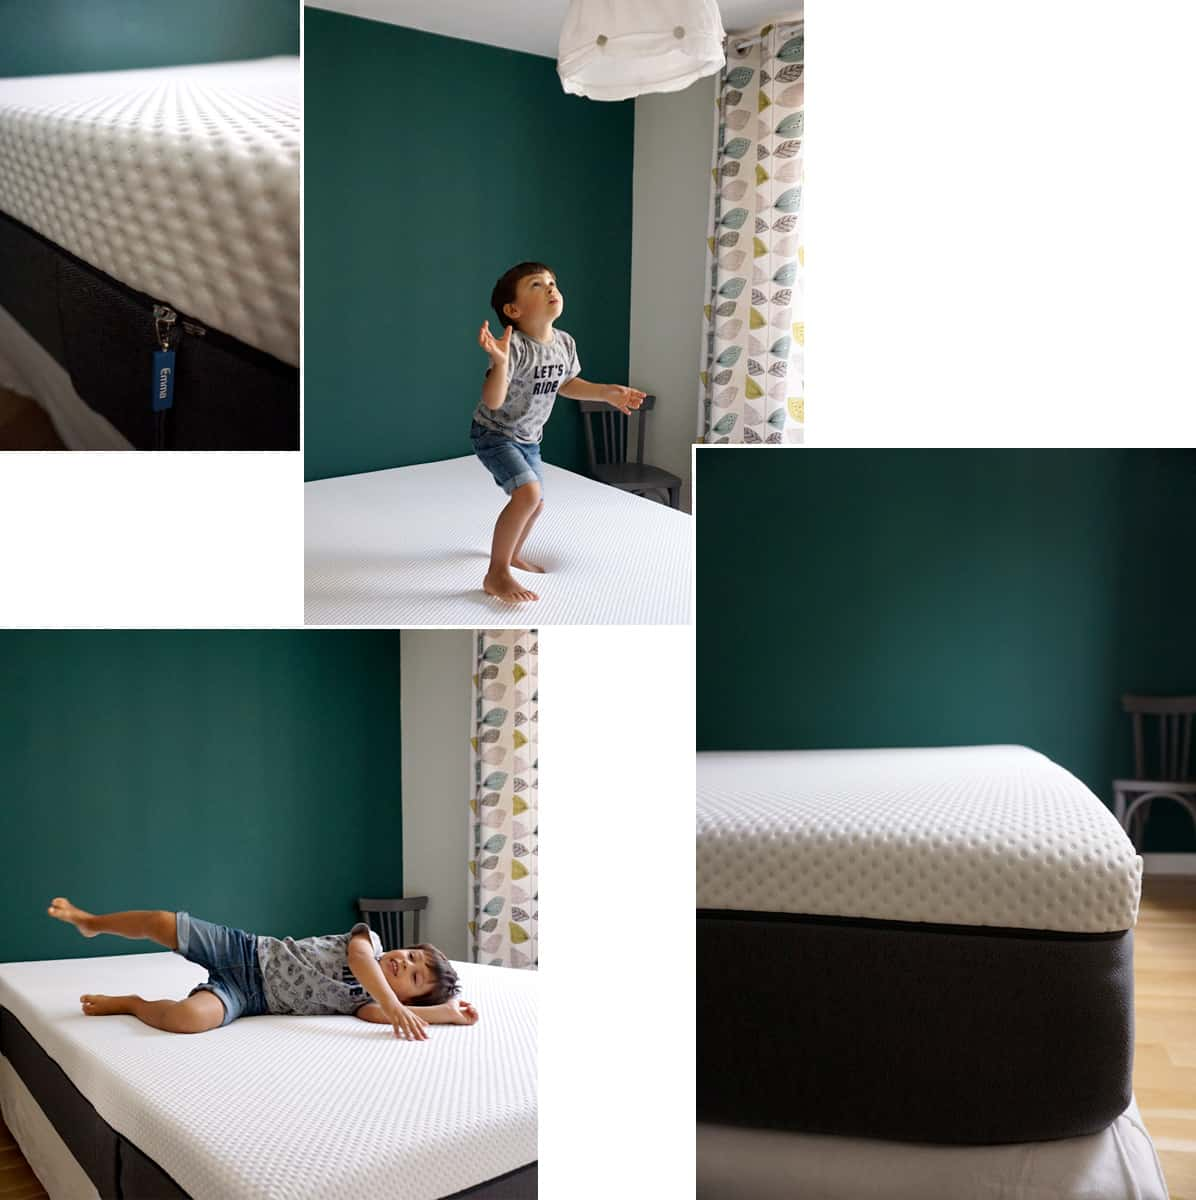 mon avis sur le matelas emma blog lifestyle d co. Black Bedroom Furniture Sets. Home Design Ideas